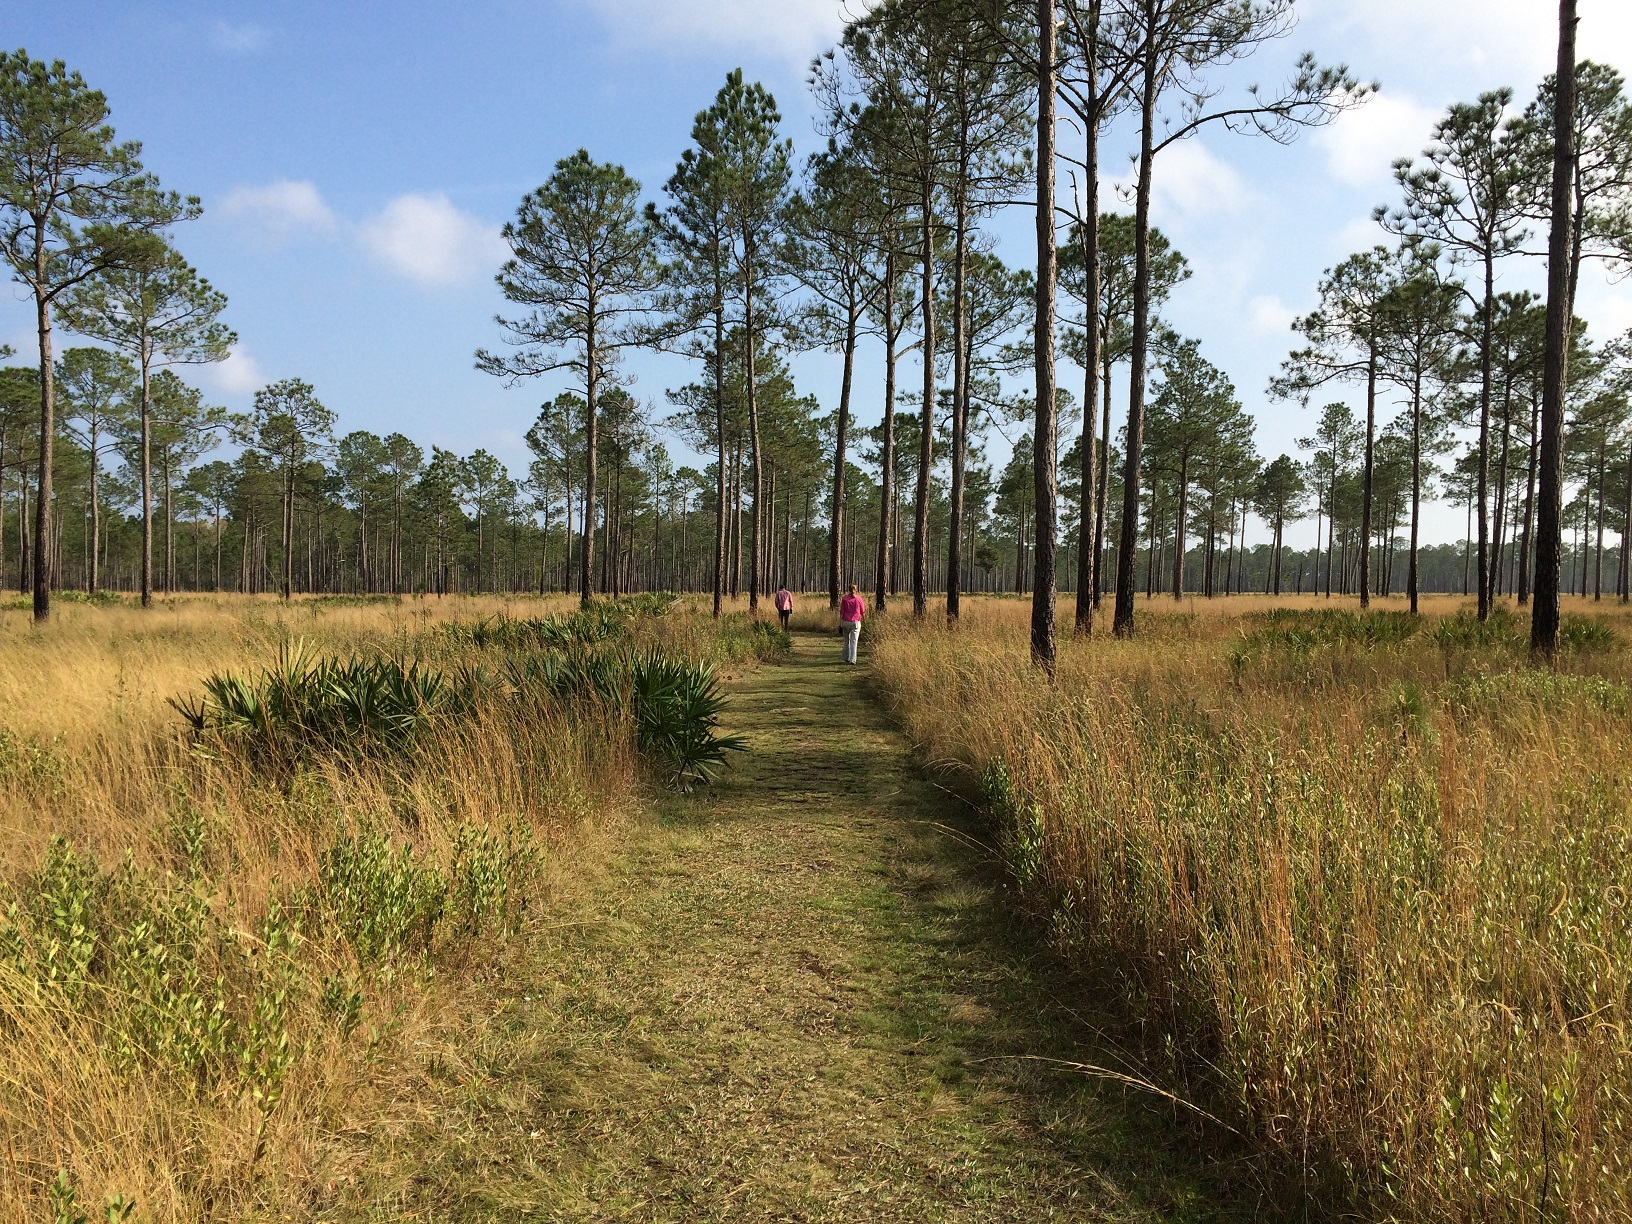 Longleaf pine stand with open, grassy understory.